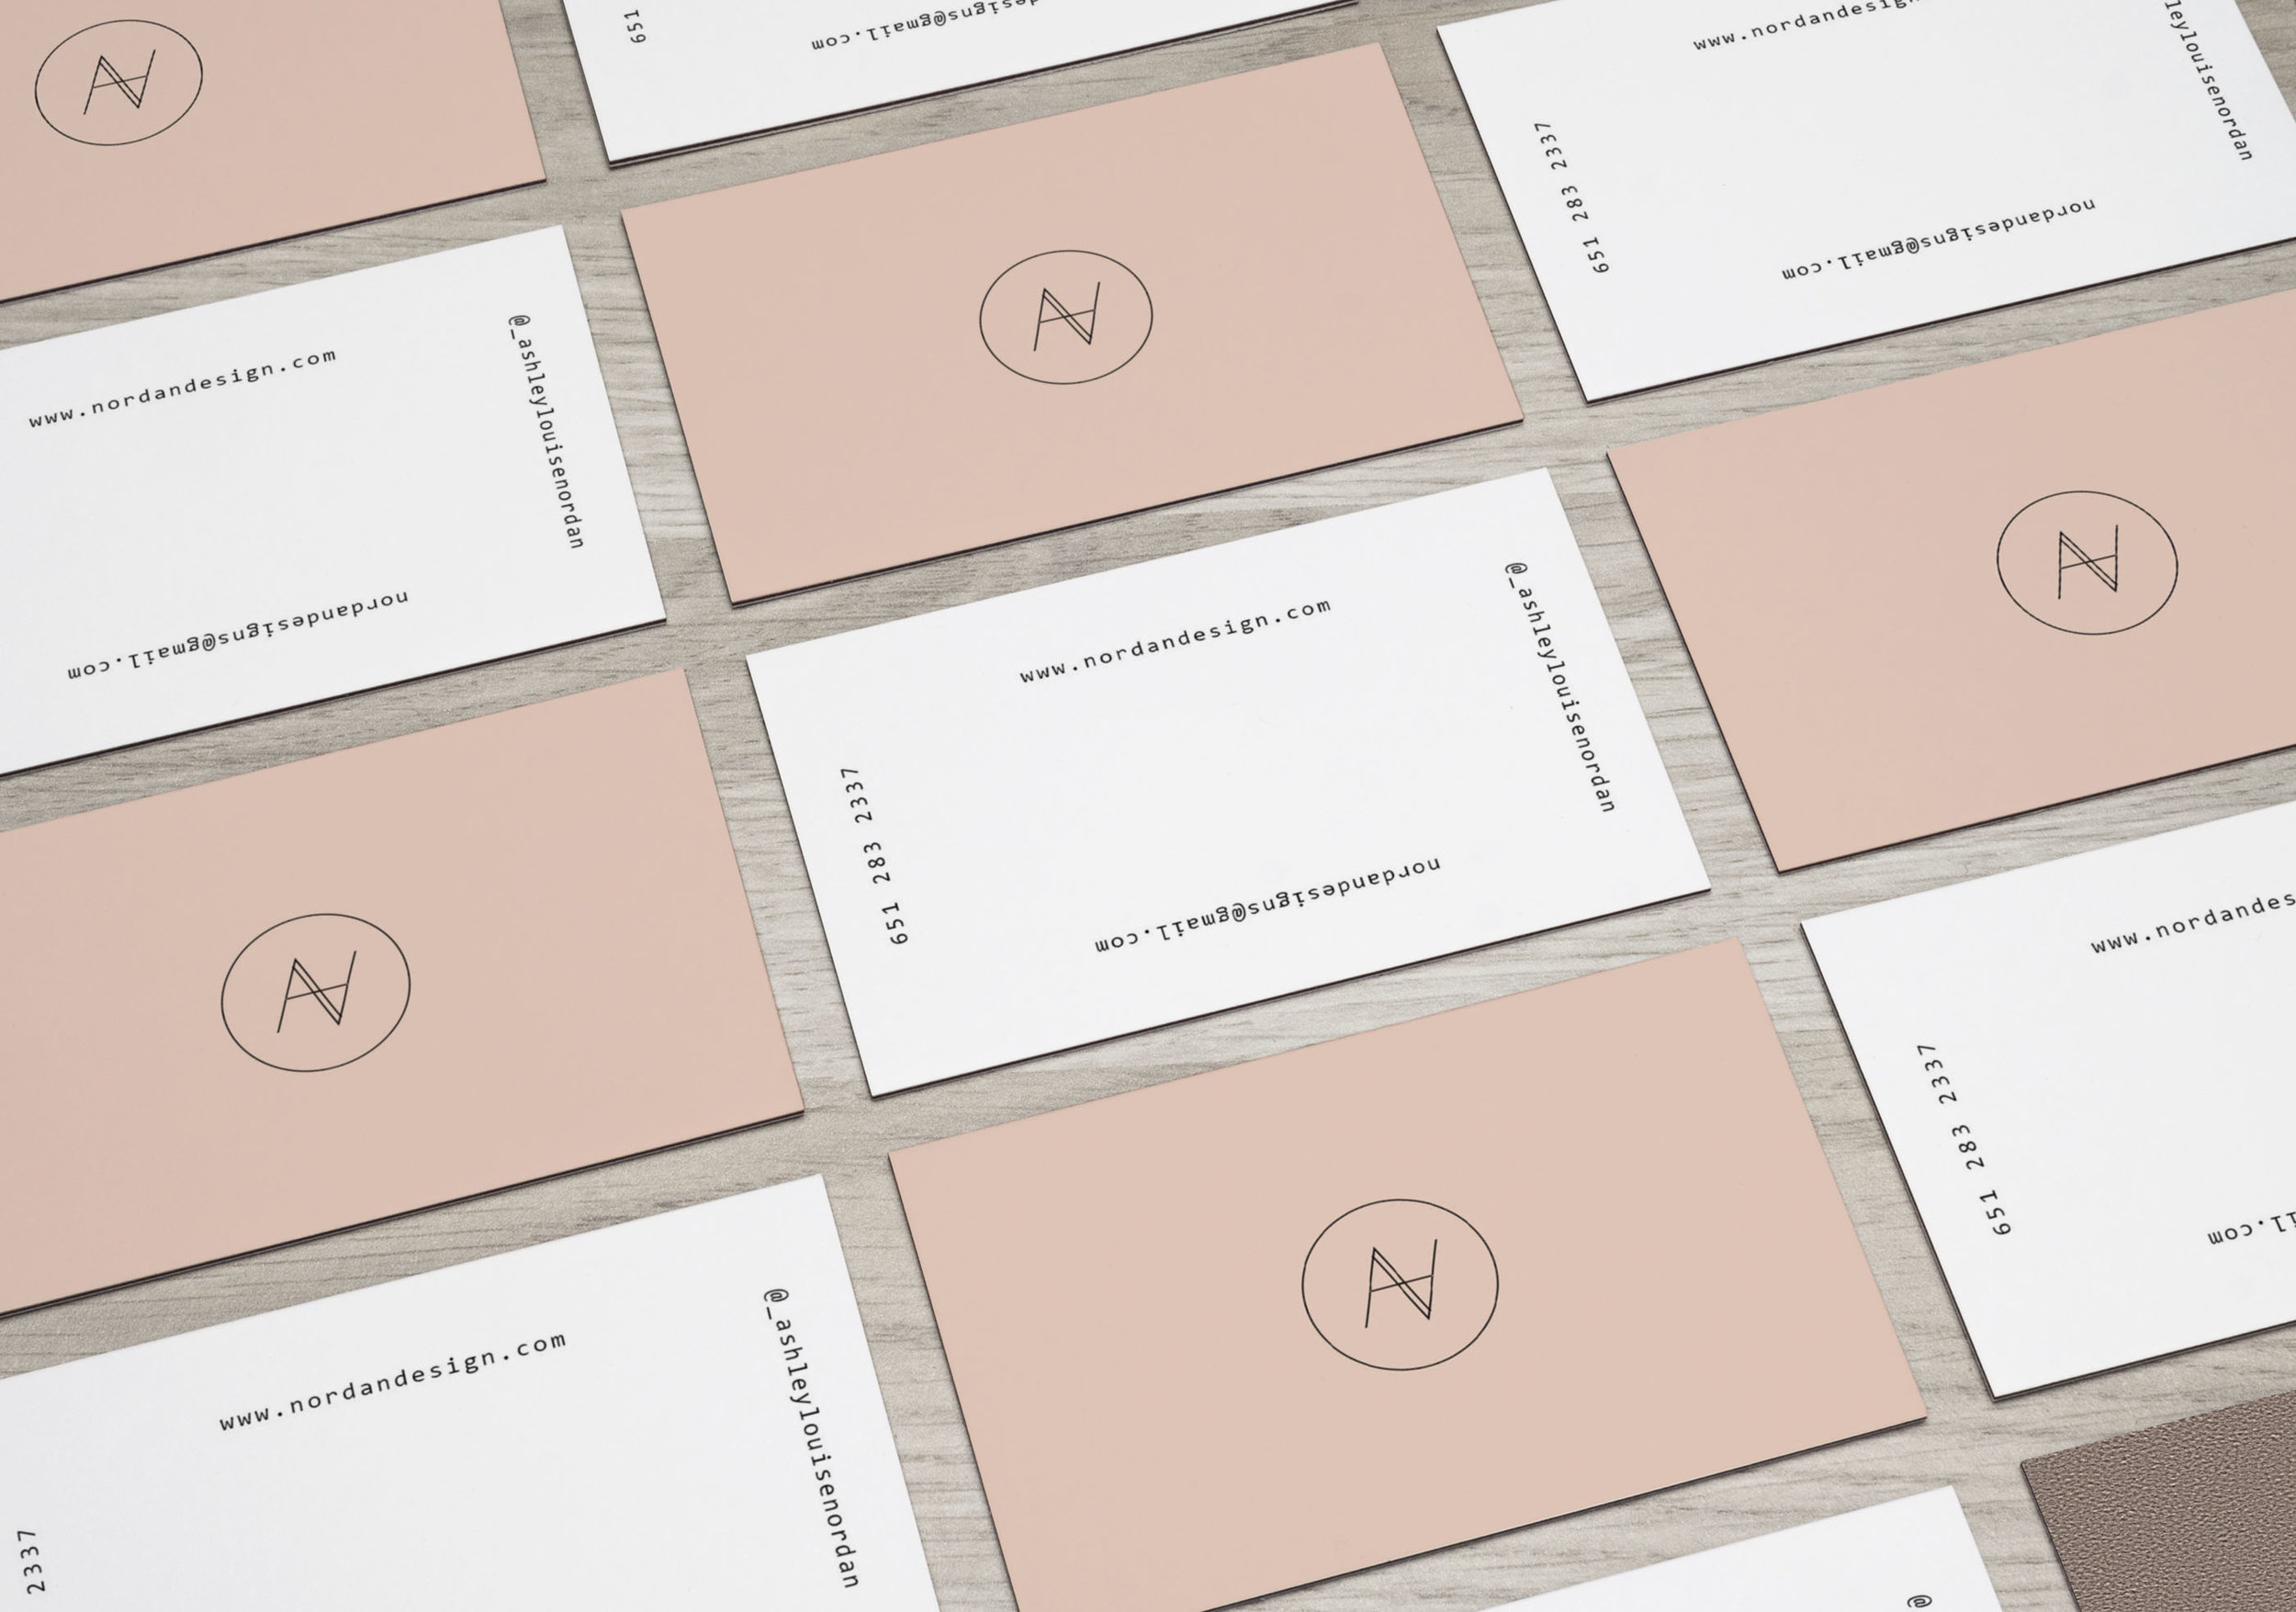 Perspective Business Cards MockUp new_2019.jpg